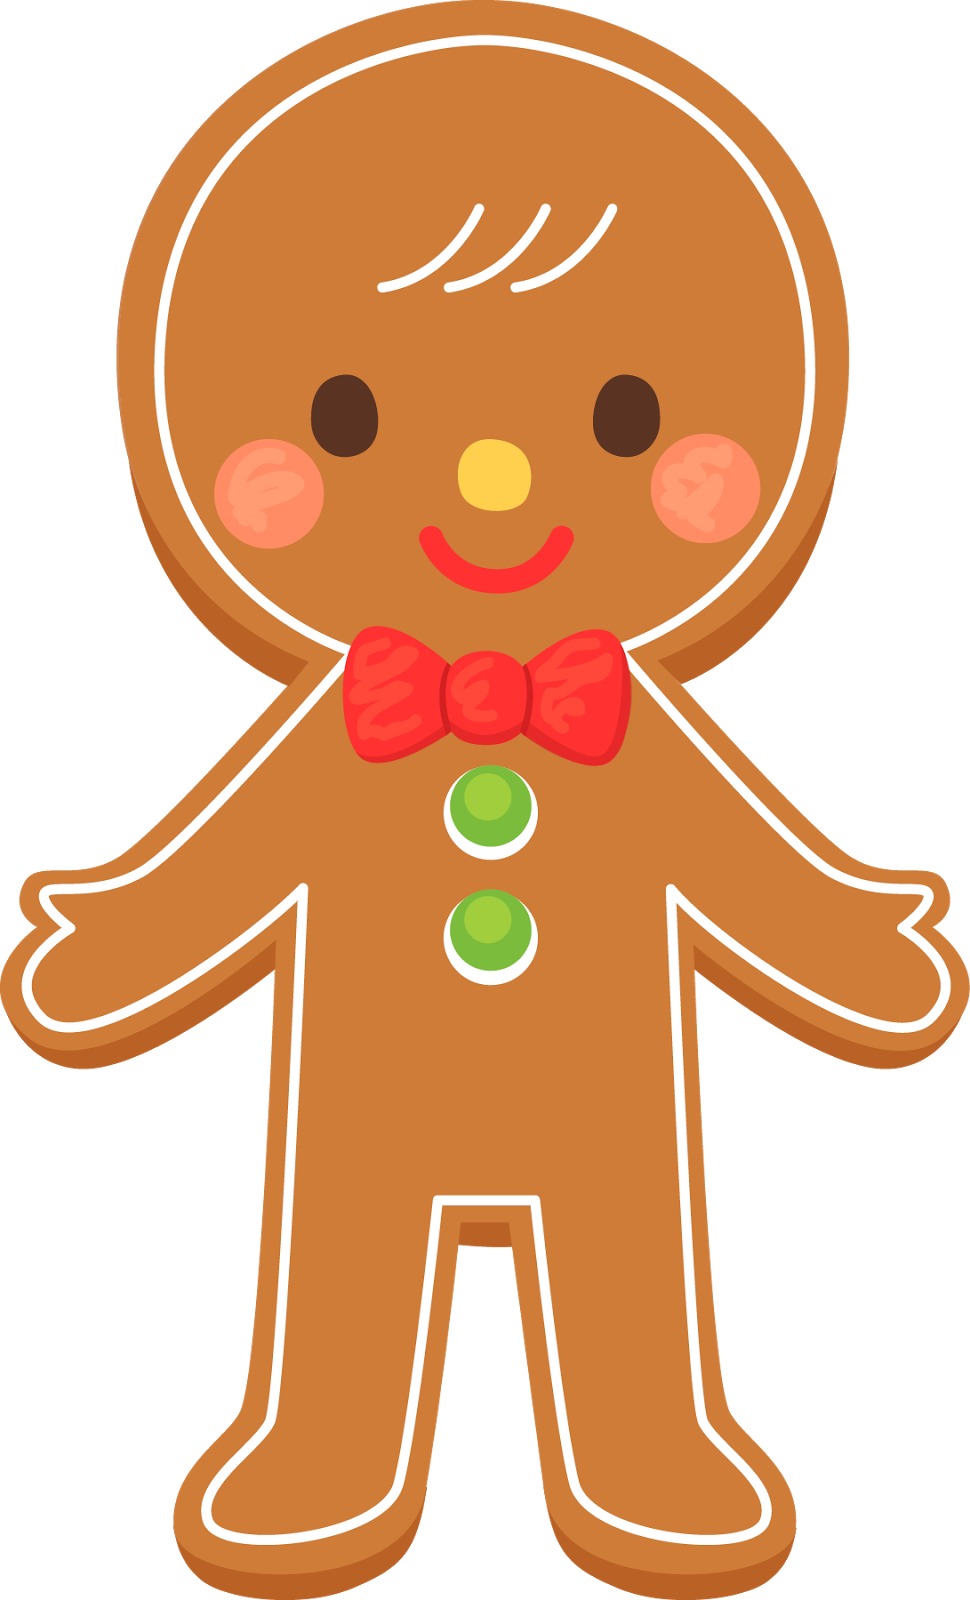 Deer clipart kid. Free gingerbread man cliparts